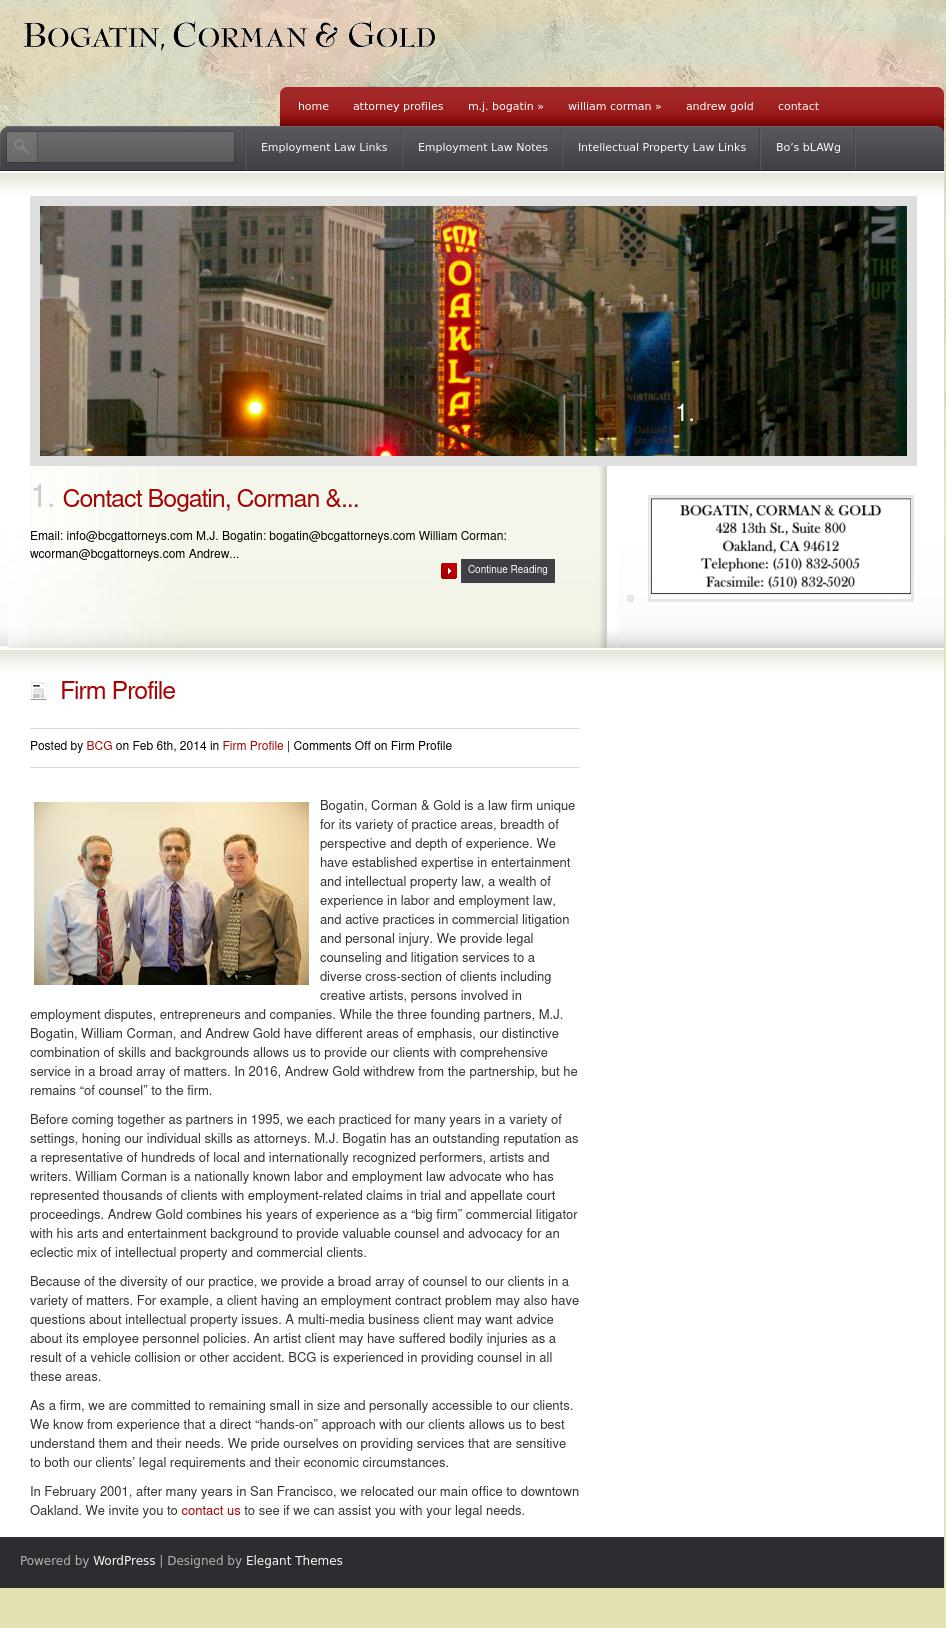 Bogatin Corman & Gold Attorneys At Law - Oakland CA Lawyers